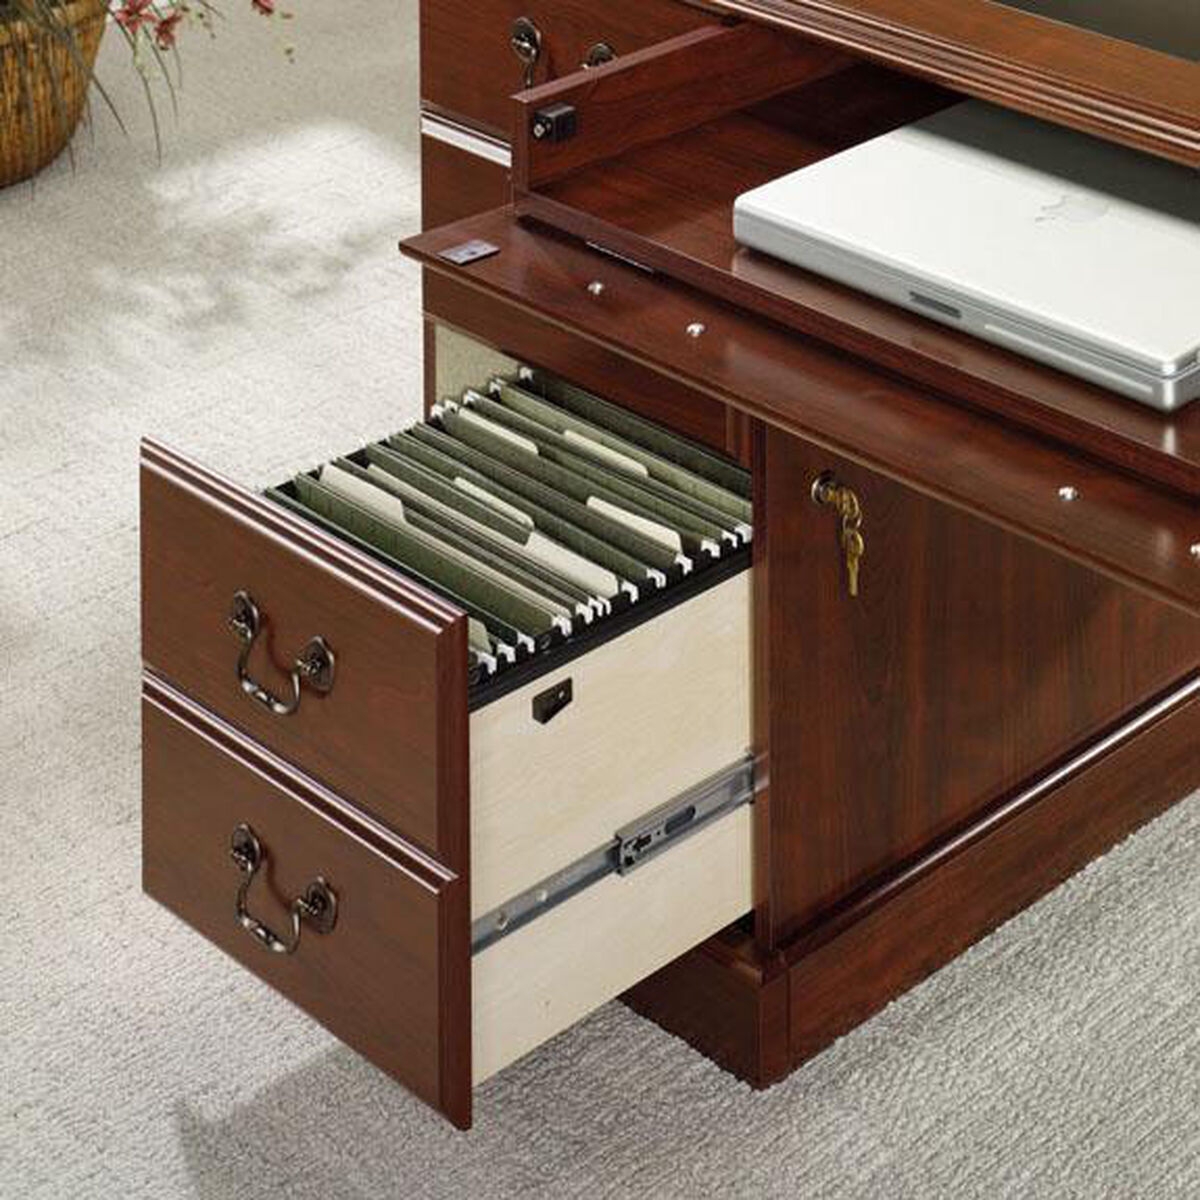 Our Heritage Hill 64 75 W Executive Desk Classic Cherry Is On Now